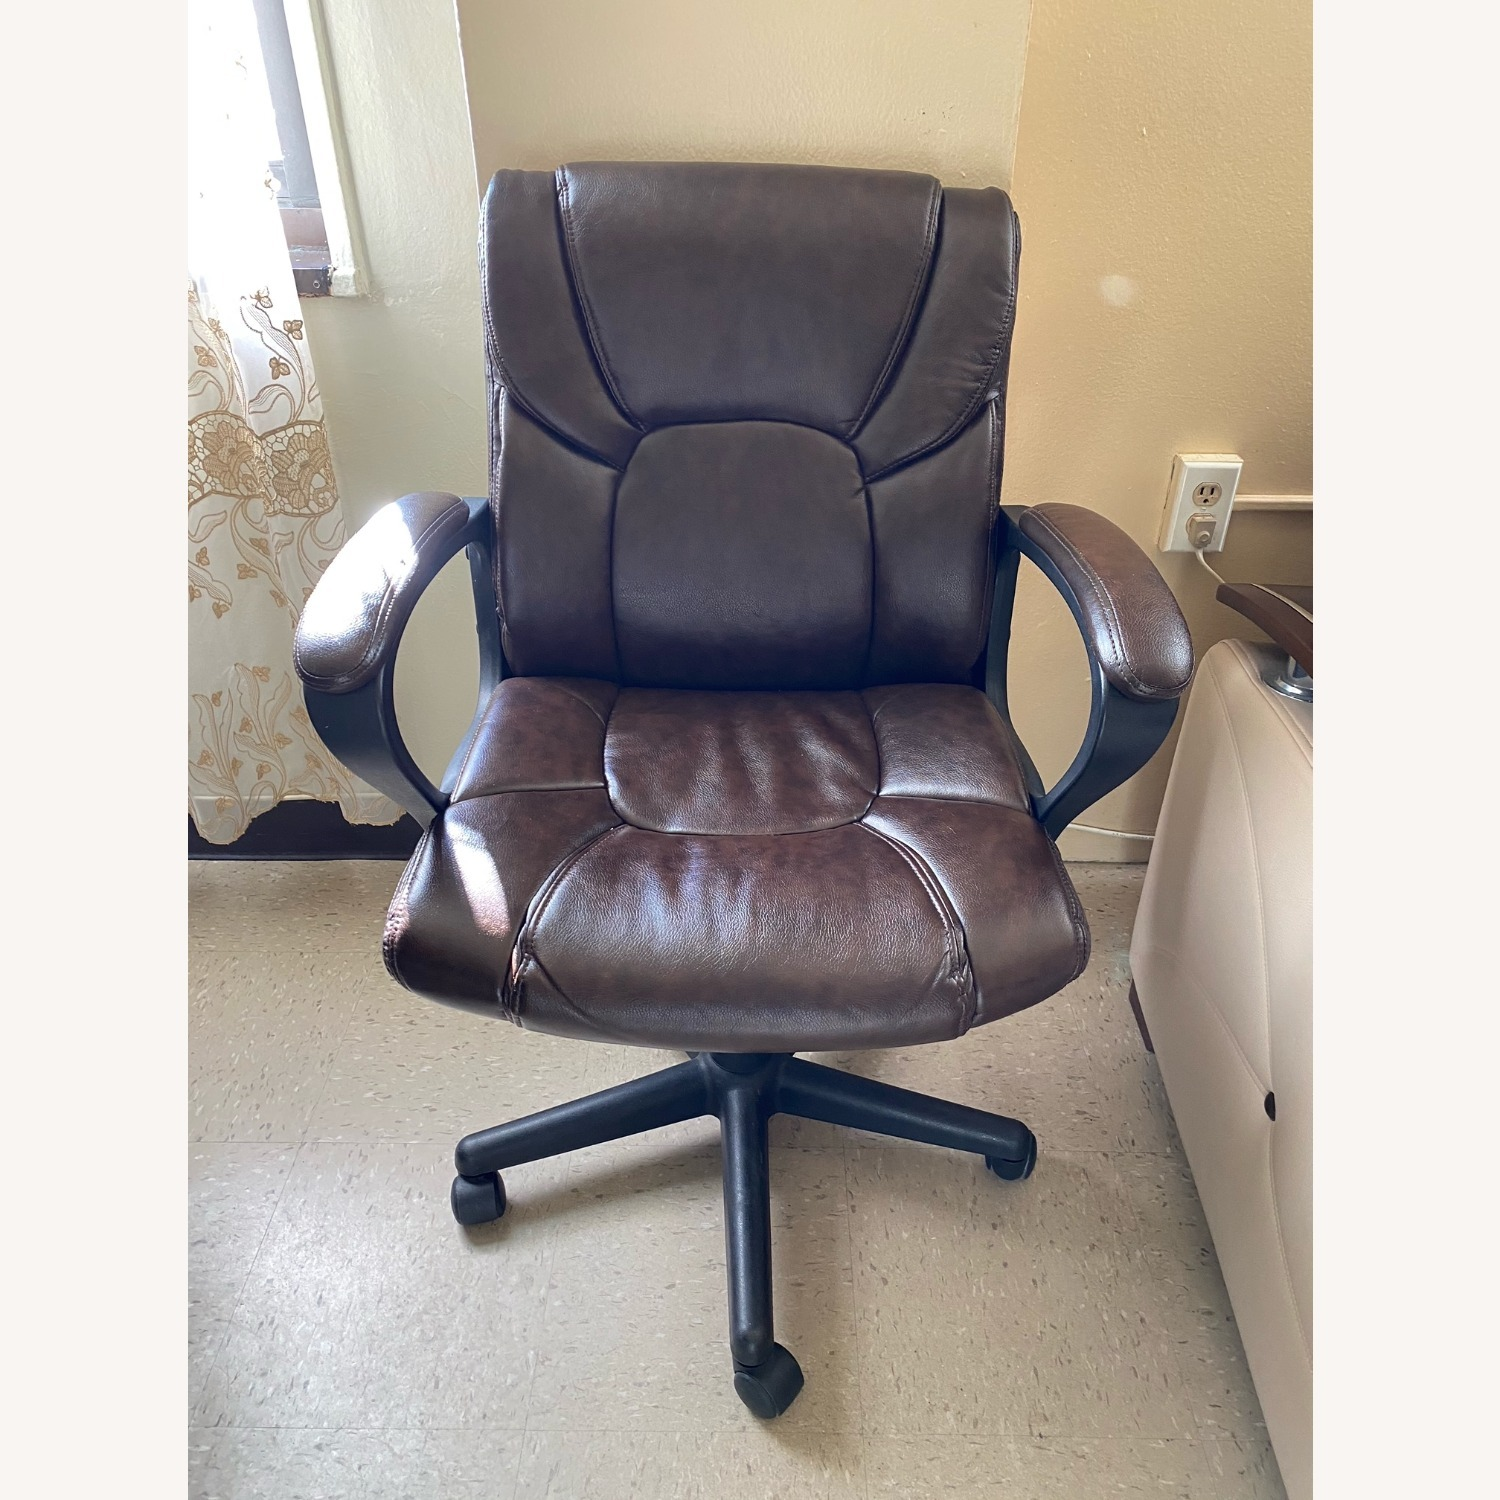 Staples Office Armchair on Wheels - image-2